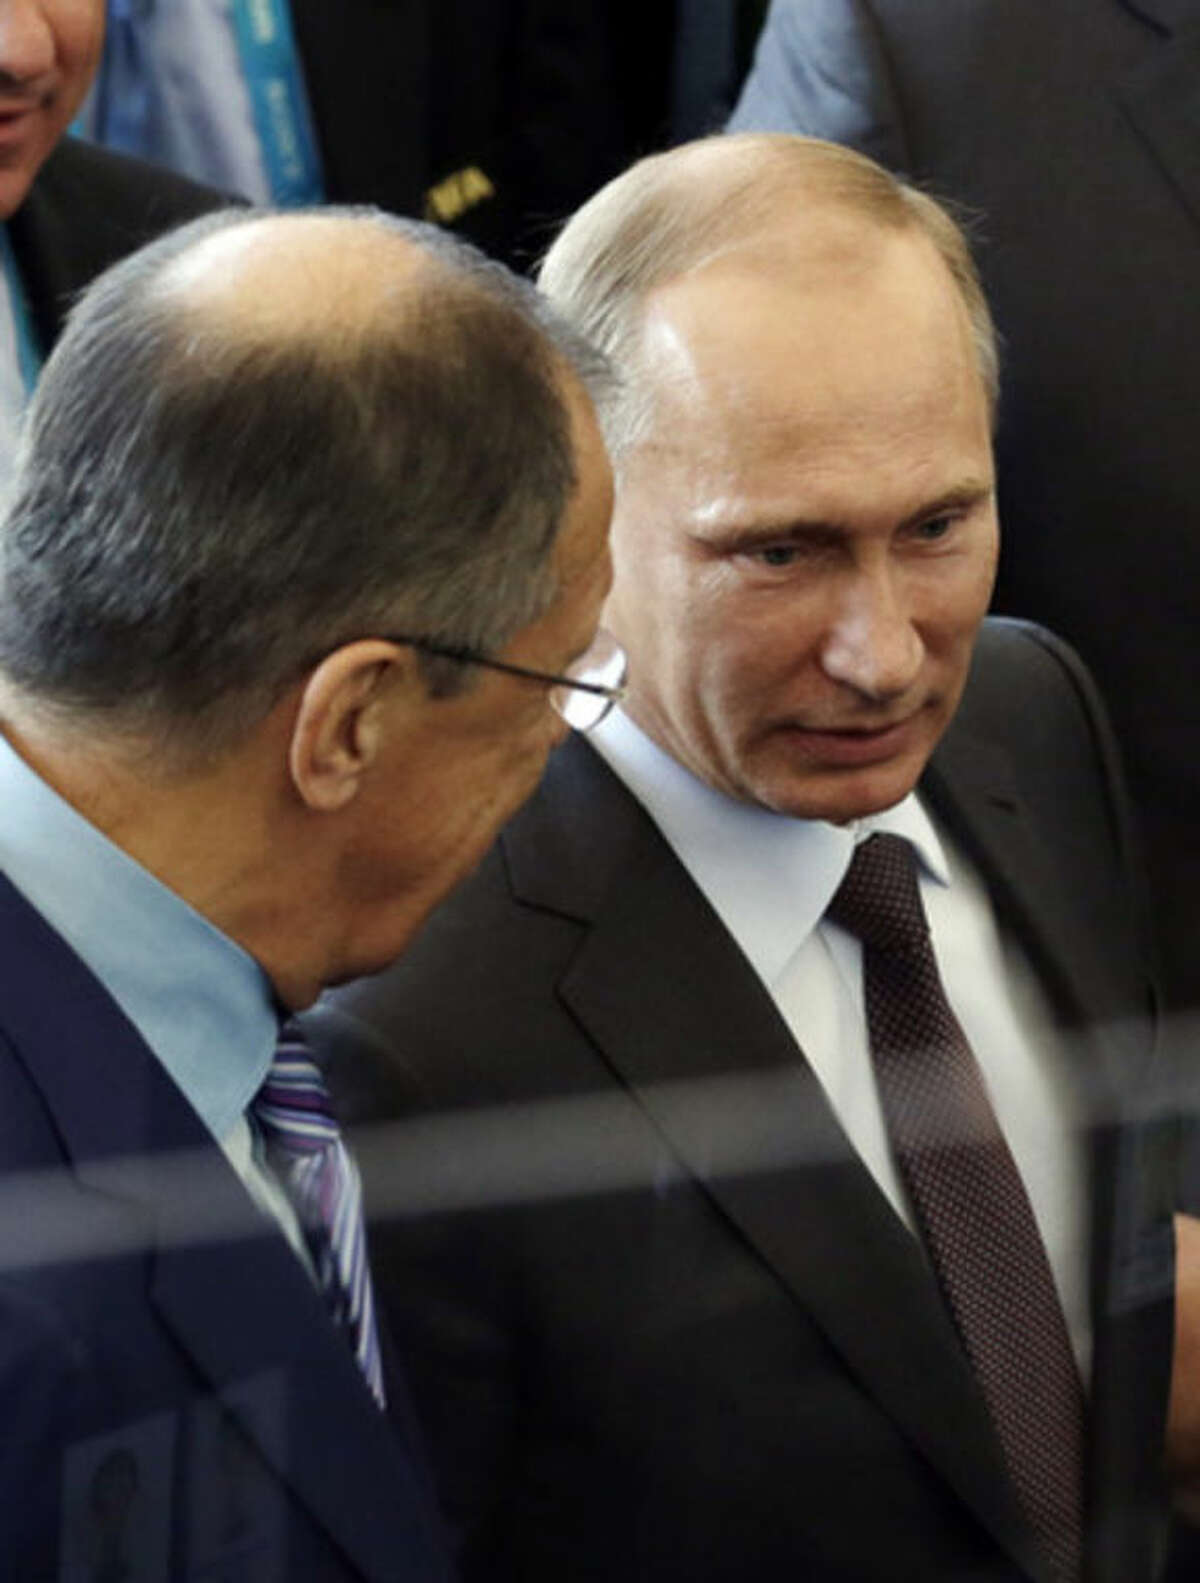 Russia's President Vladimir Putin talks to Russian Foreign Minister Sergei Lavrov during the World Cup final soccer match between Germany and Argentina at the Maracana Stadium in Rio de Janeiro, Brazil, Sunday, July 13, 2014. (AP Photo/Hassan Ammar)